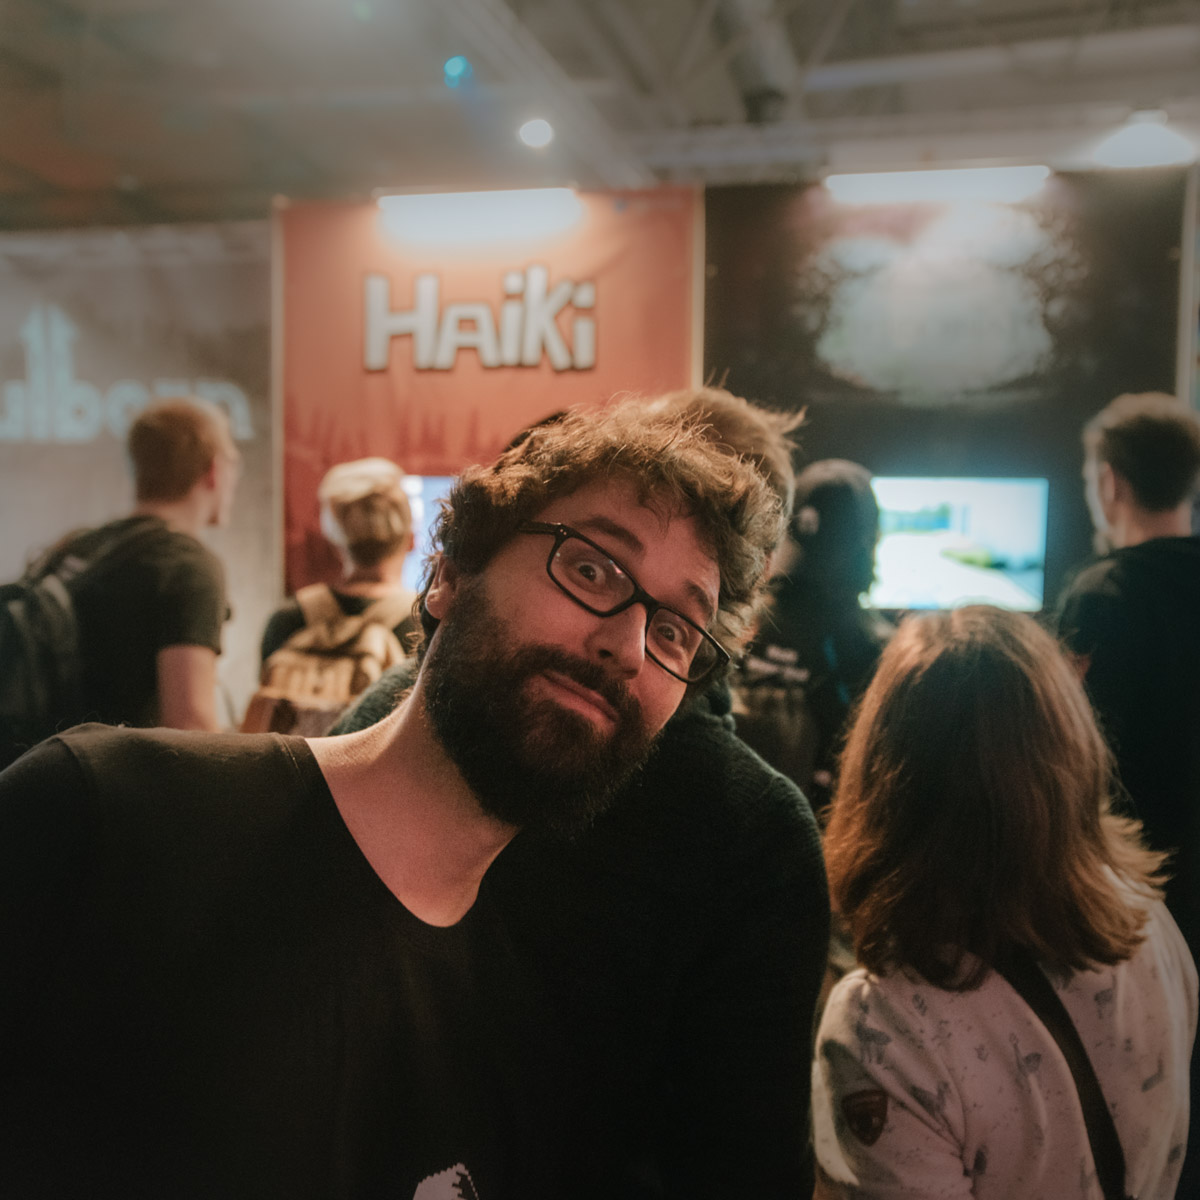 steve smiling at an indoor event